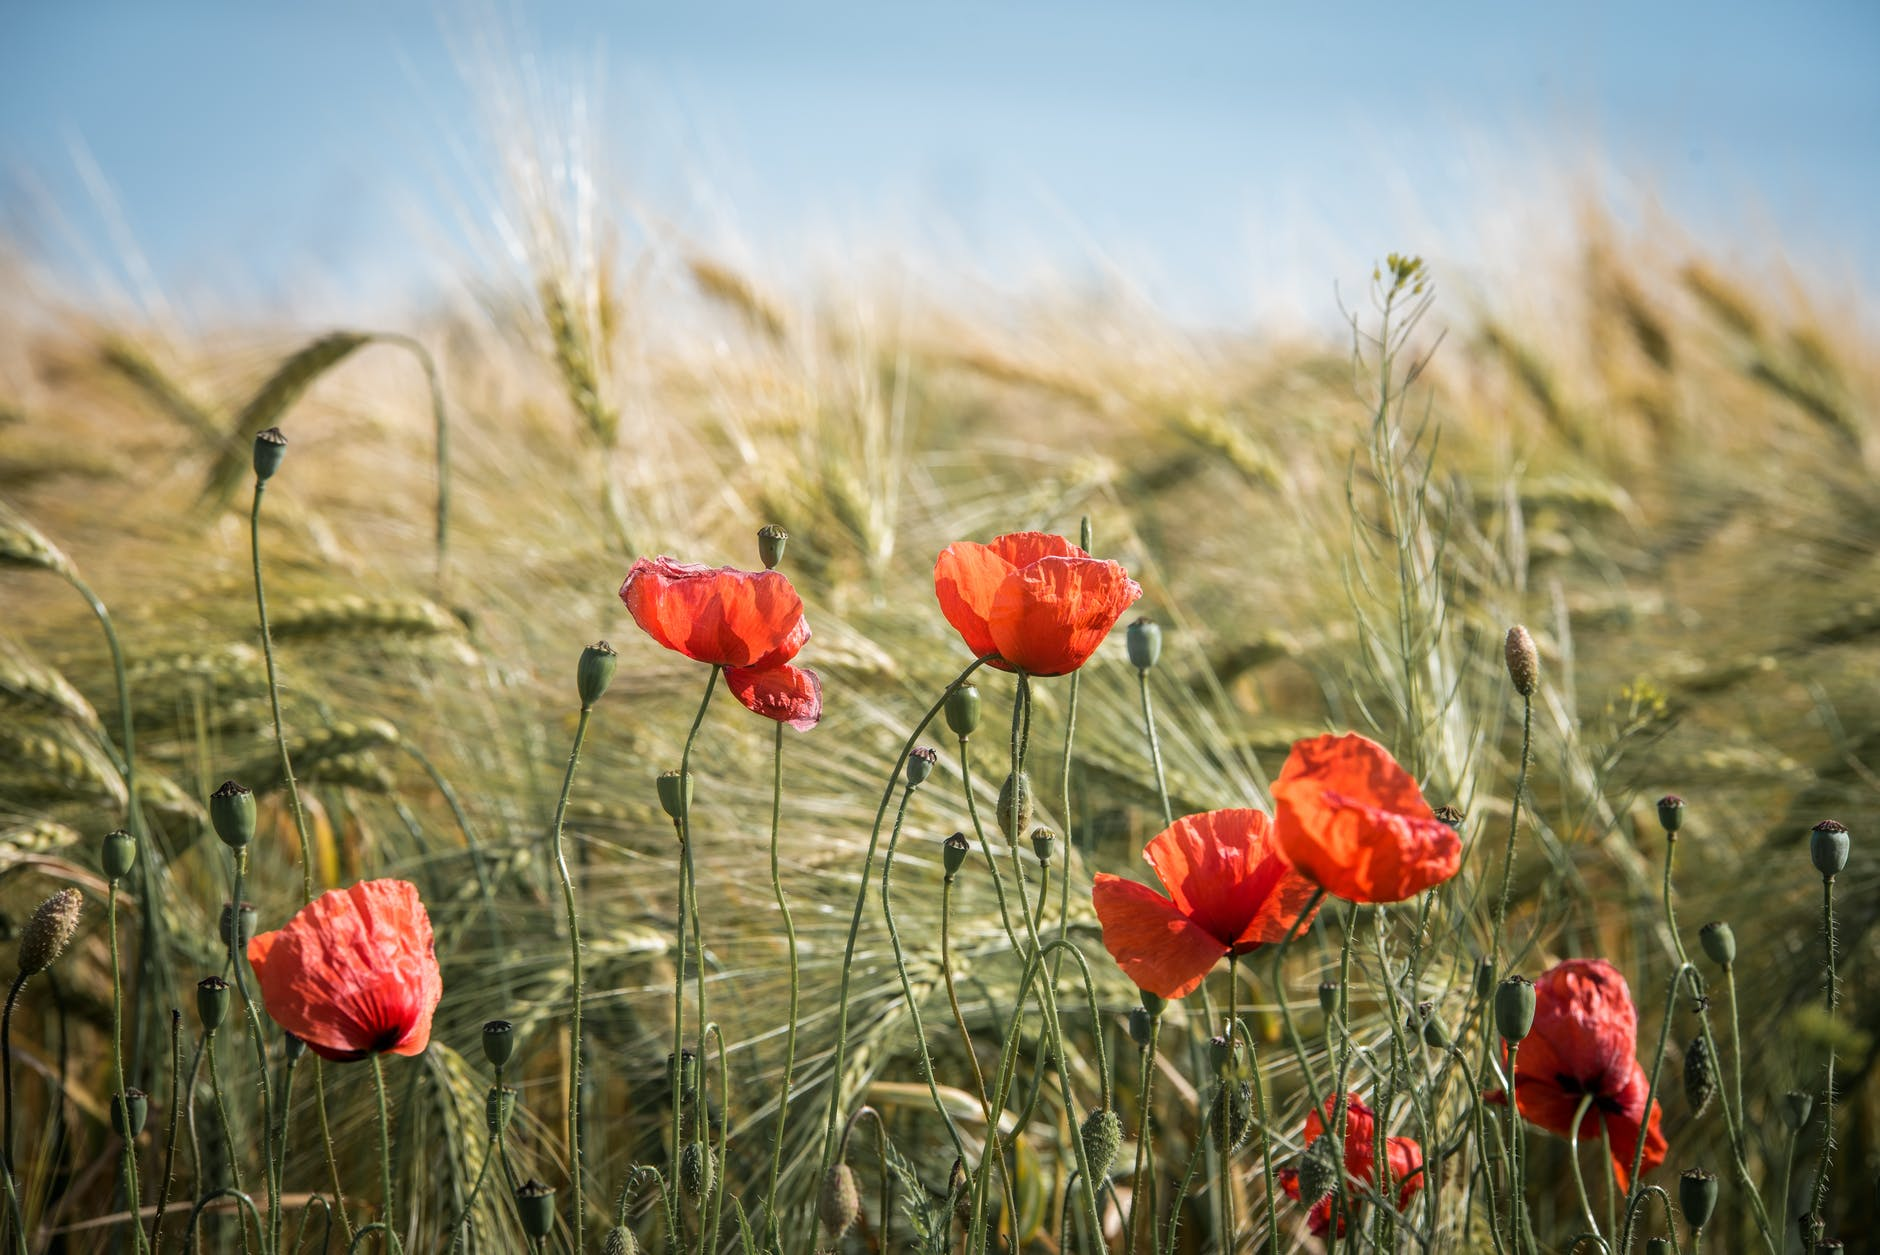 several red poppies growing in a field of wheat